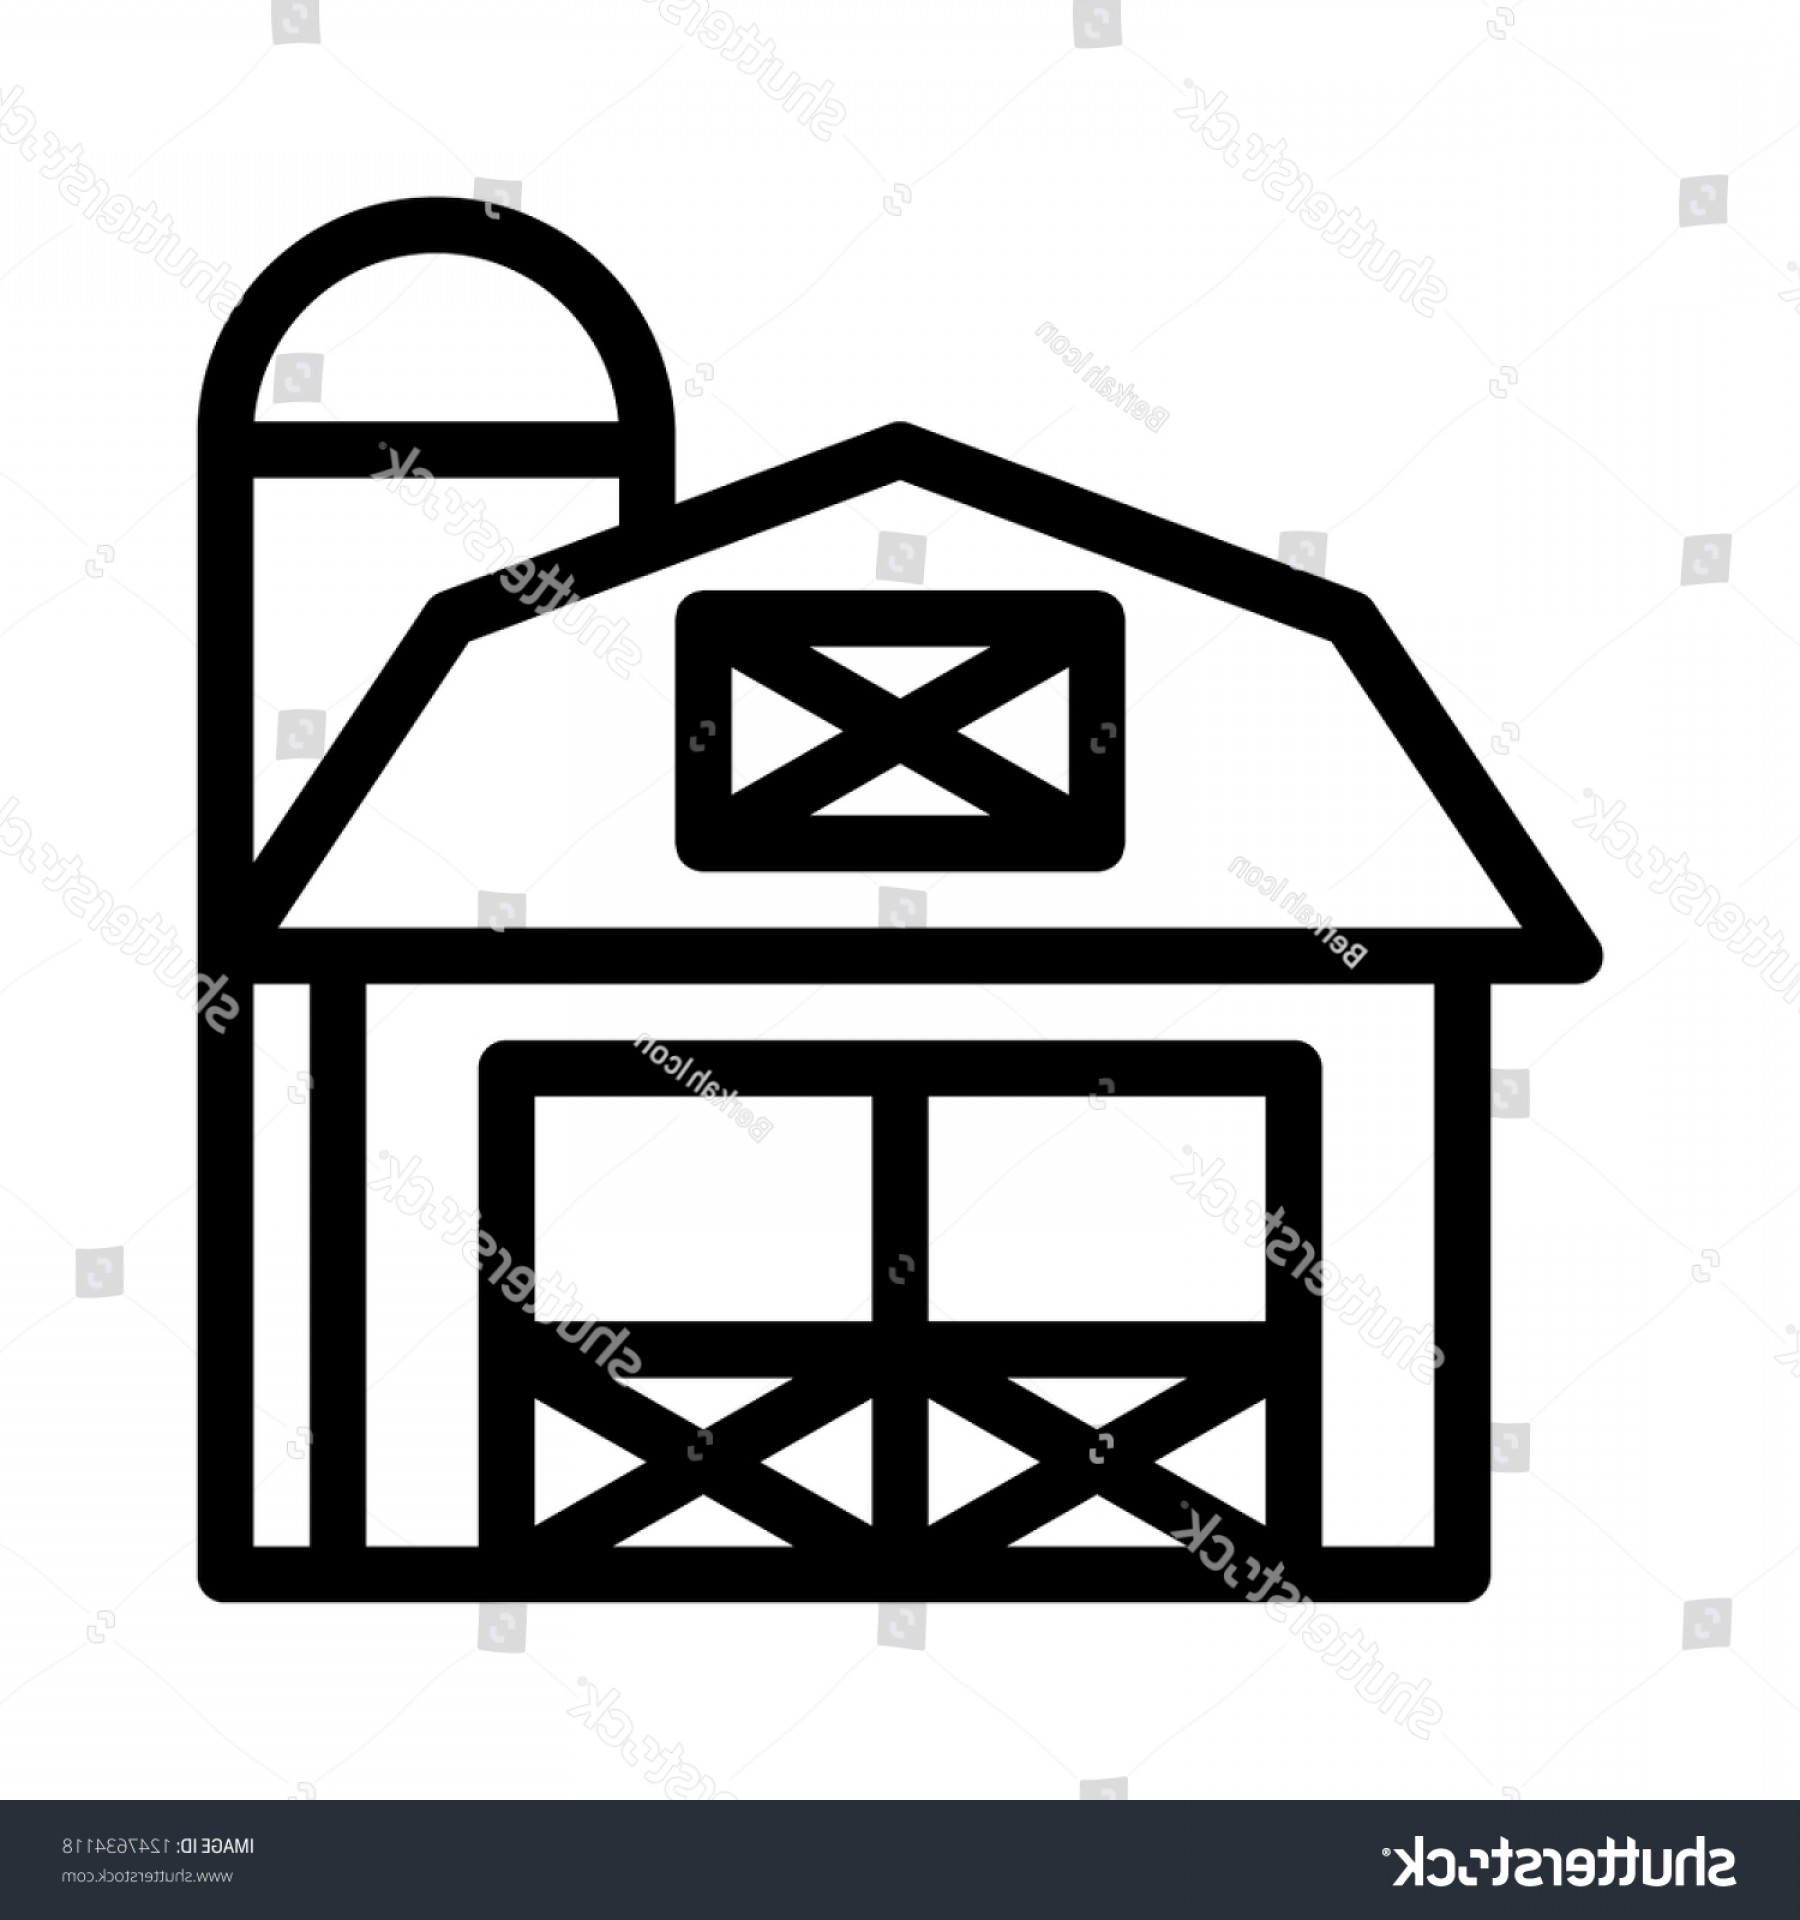 Barn Outline Vector: Barn Building Icon Outline Vector